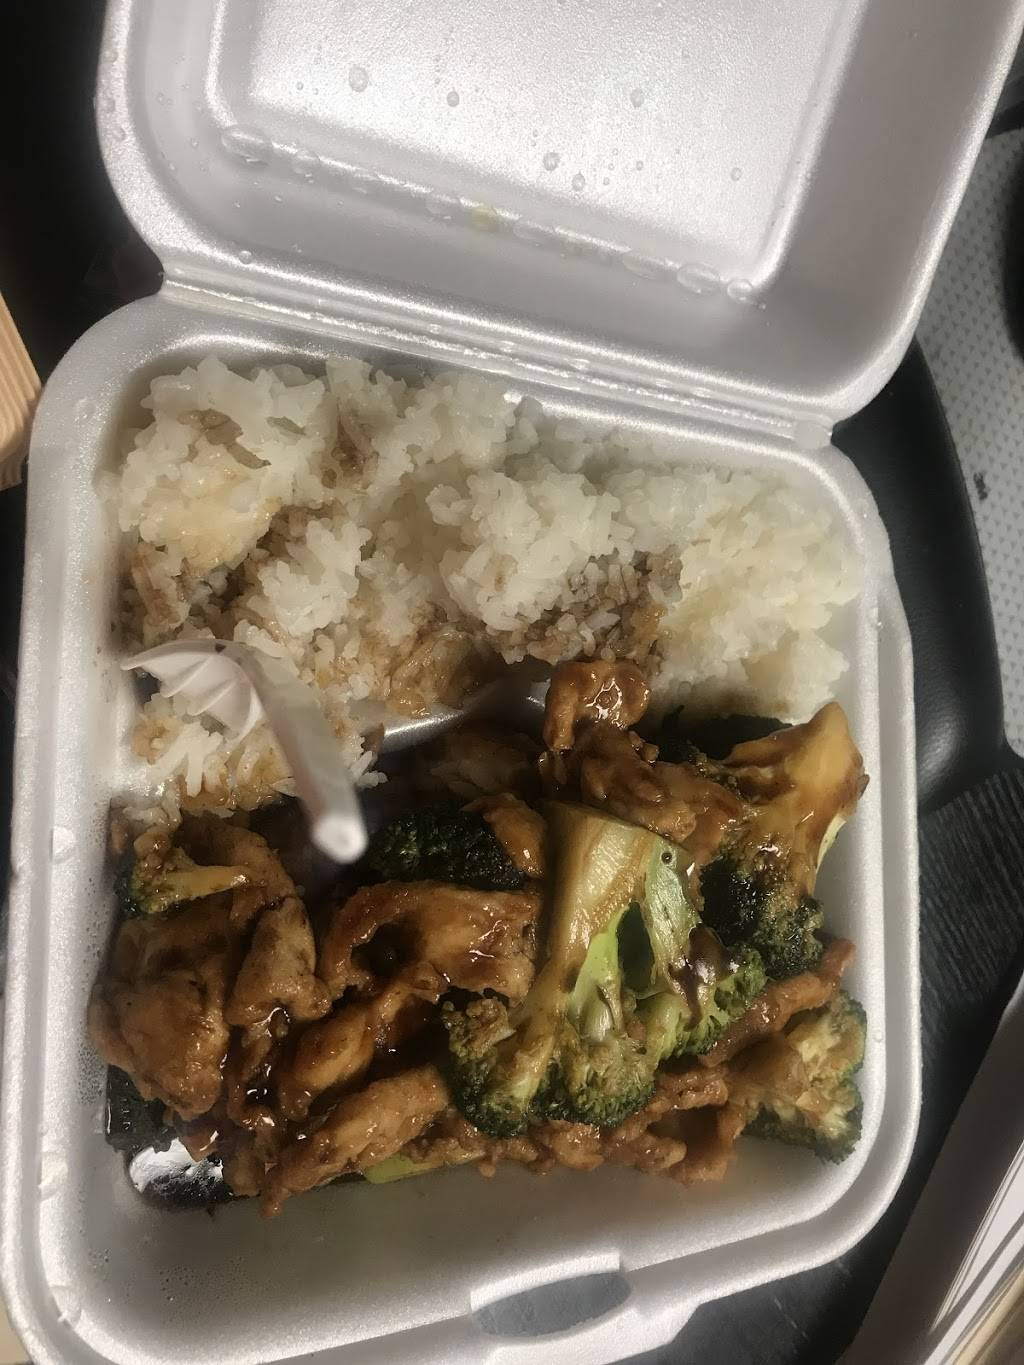 Wah Lock Restaurant - meal delivery  | Photo 1 of 4 | Address: 6505 New Hampshire Ave, Takoma Park, MD 20912, USA | Phone: (301) 270-0043